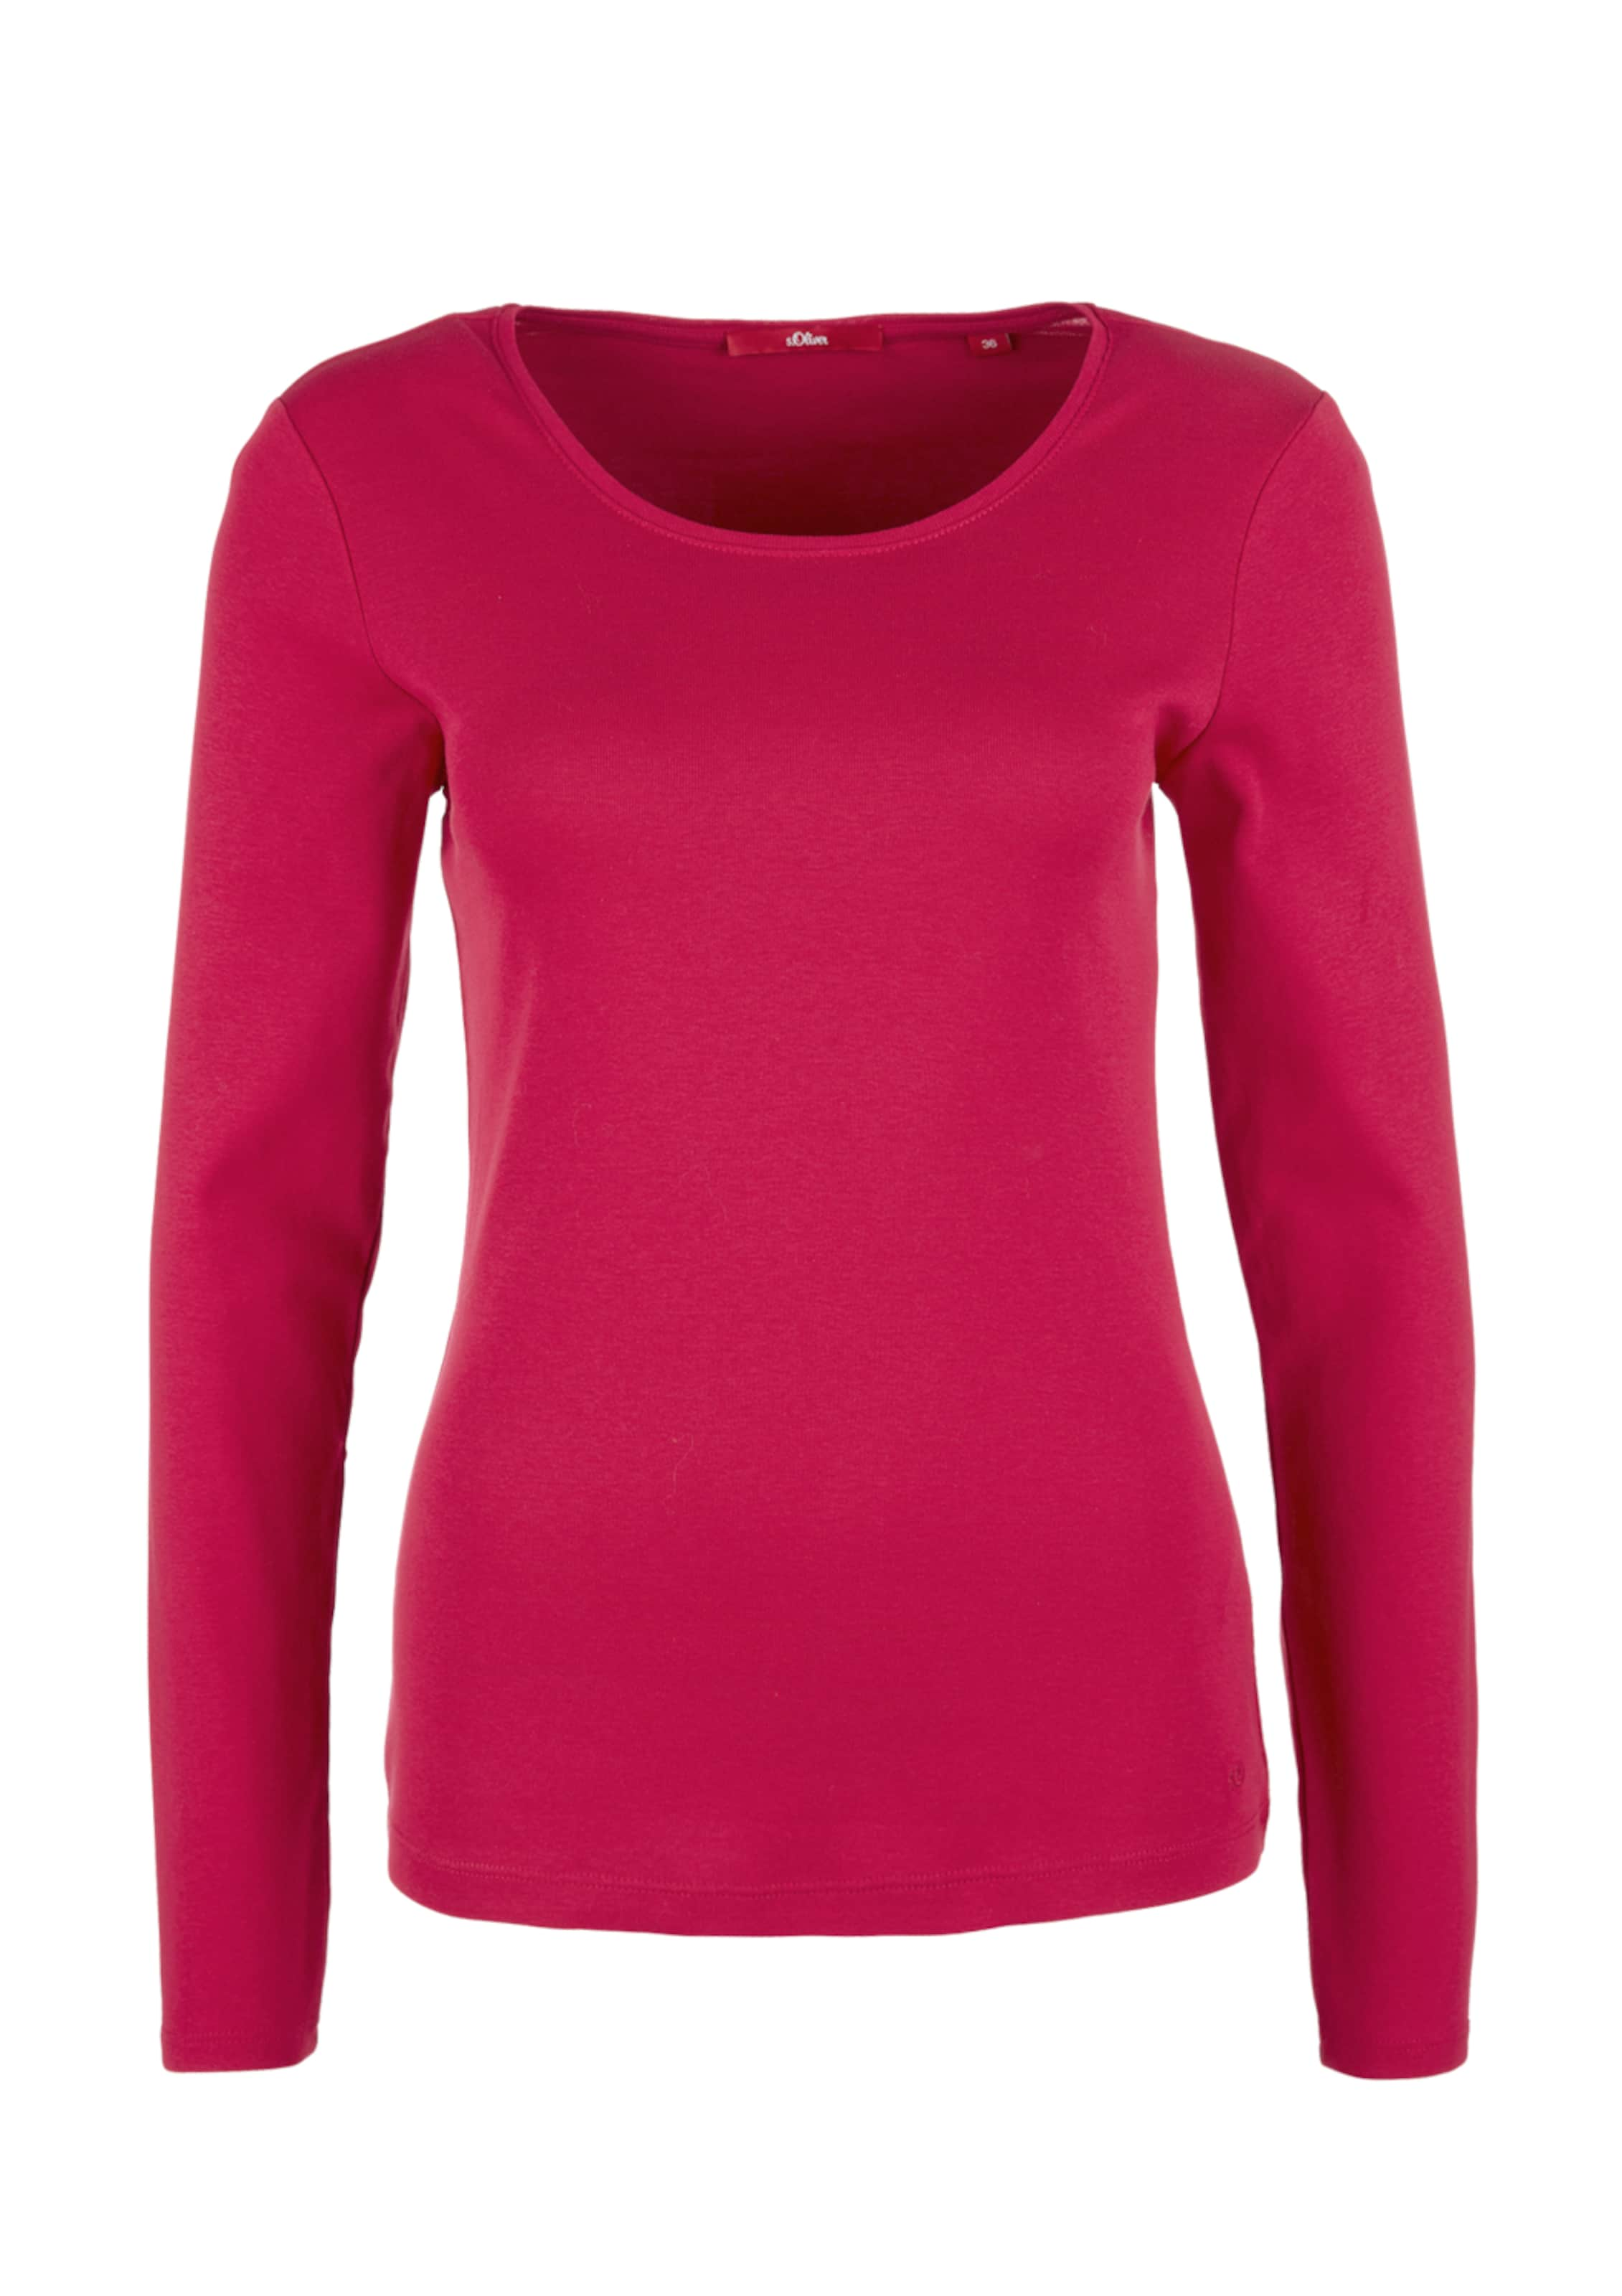 In Longsleeve oliver oliver oliver Longsleeve Dunkelpink S S In Dunkelpink S WH2ED9I